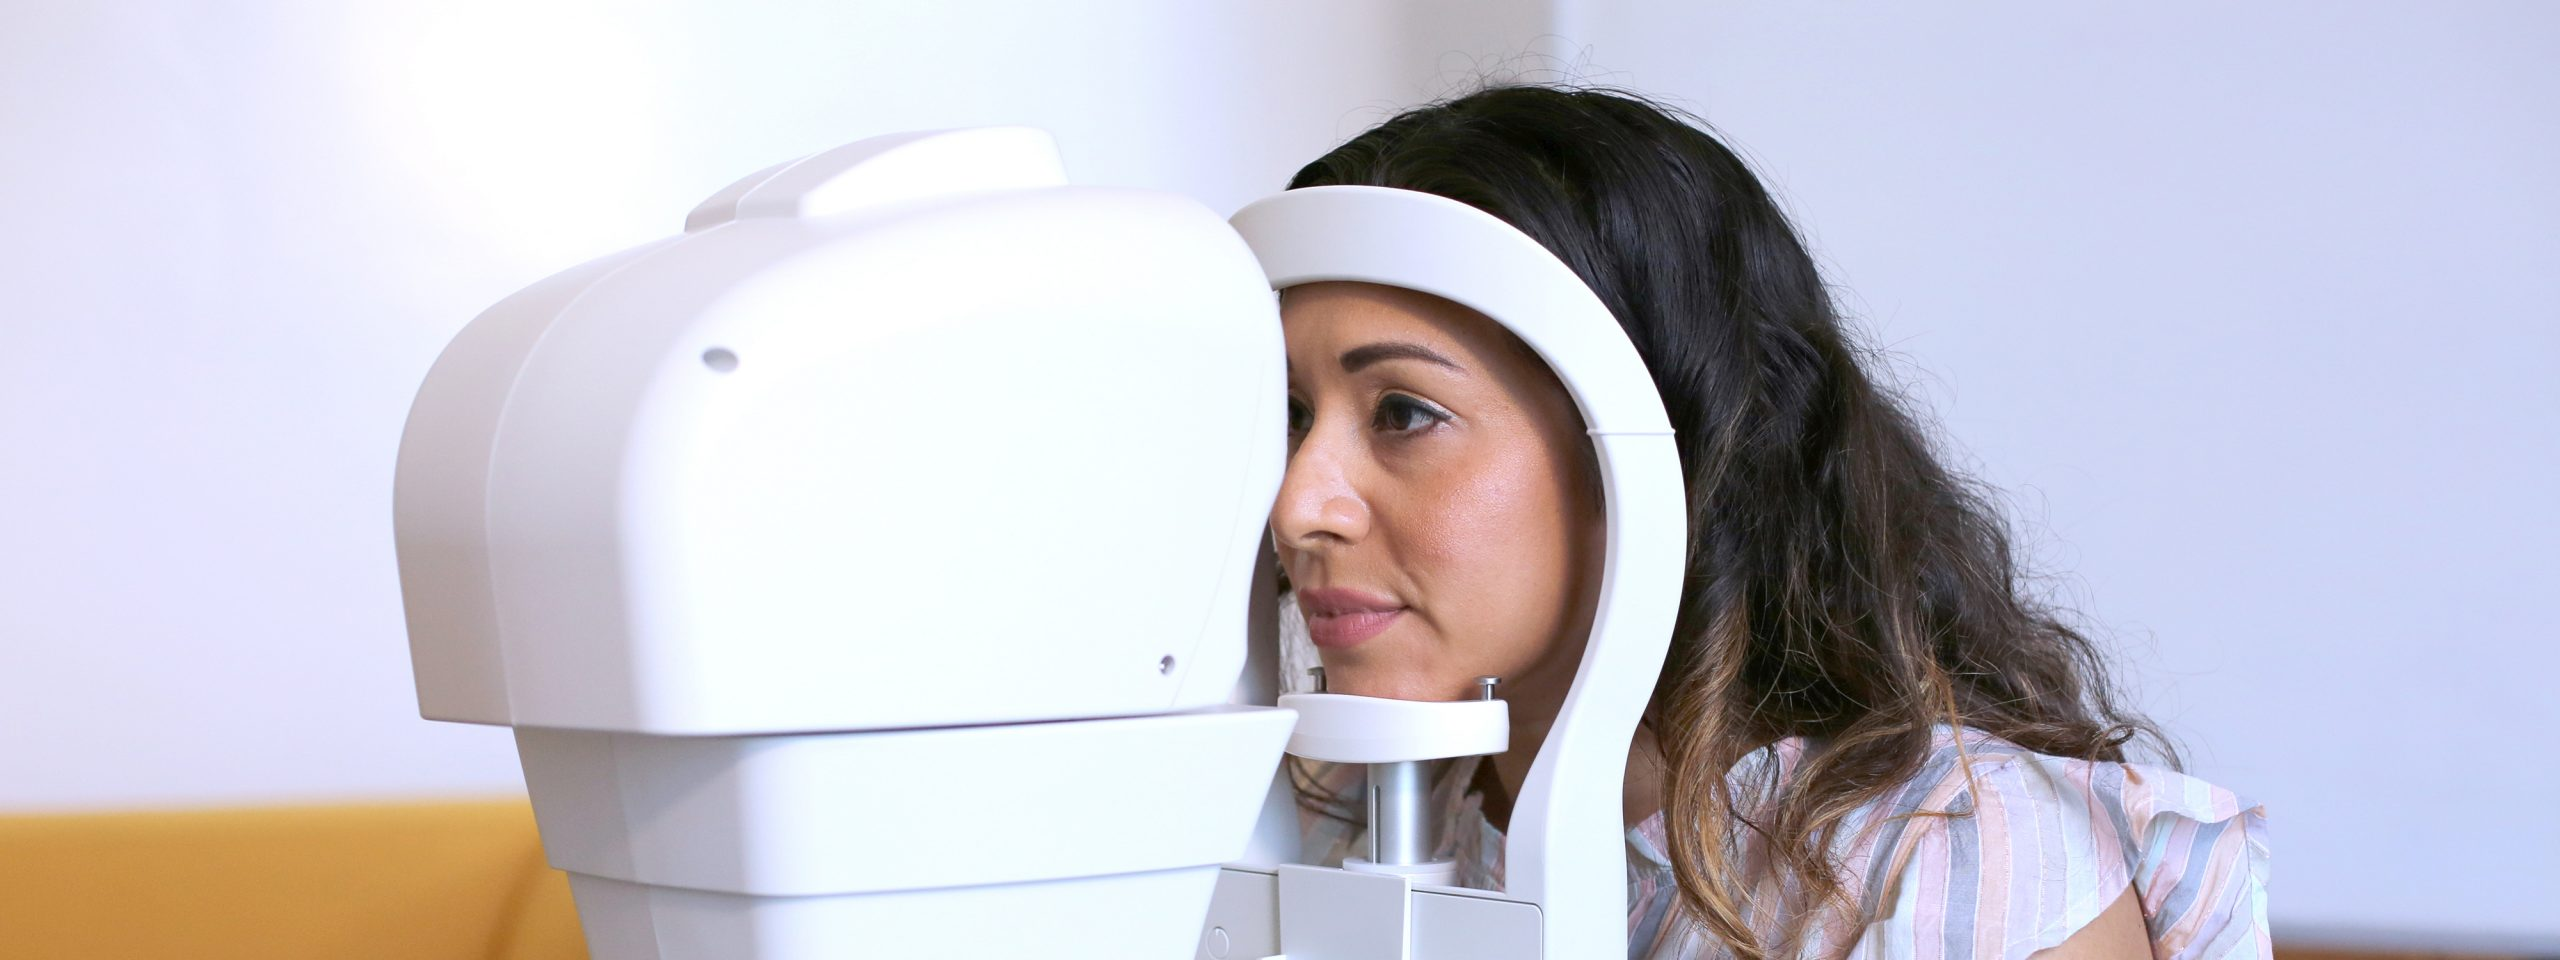 female patient getting eye screened by a machine.